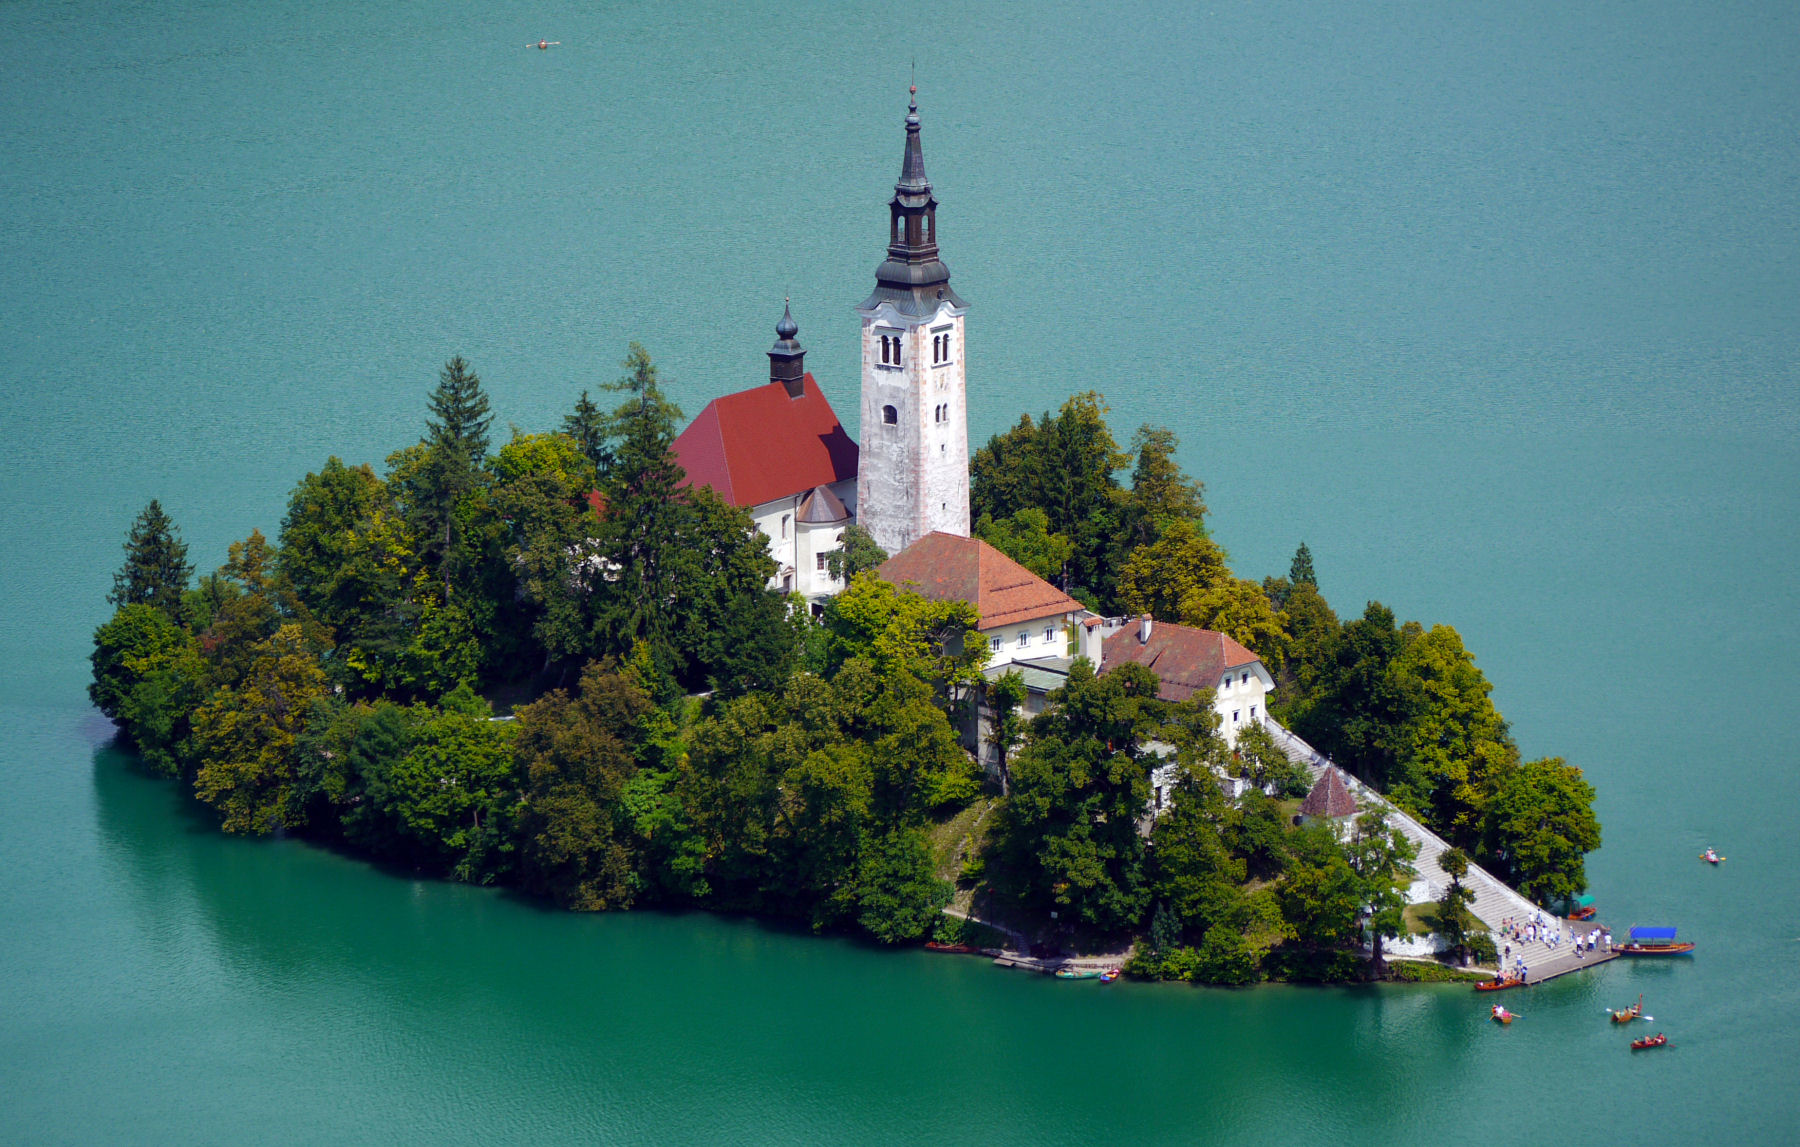 The iconic Church of the Assumption of Mary on an island in the middle of Lake Bled